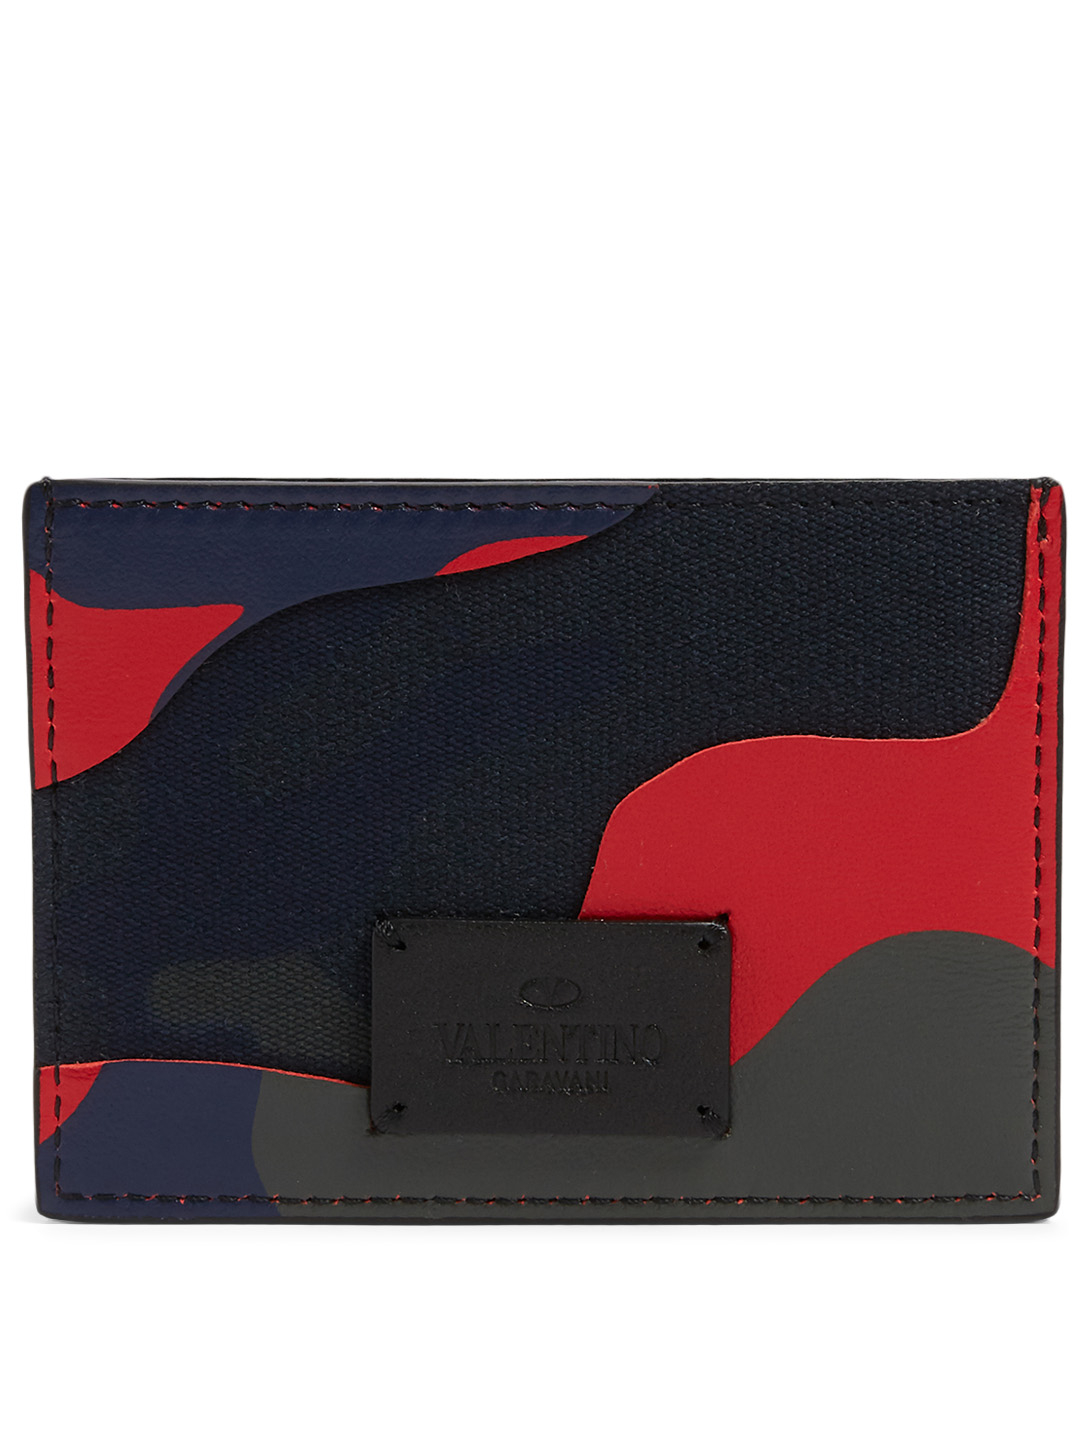 VALENTINO GARAVANI Leather And Canvas Card Holder In Camo Print Men's Multi